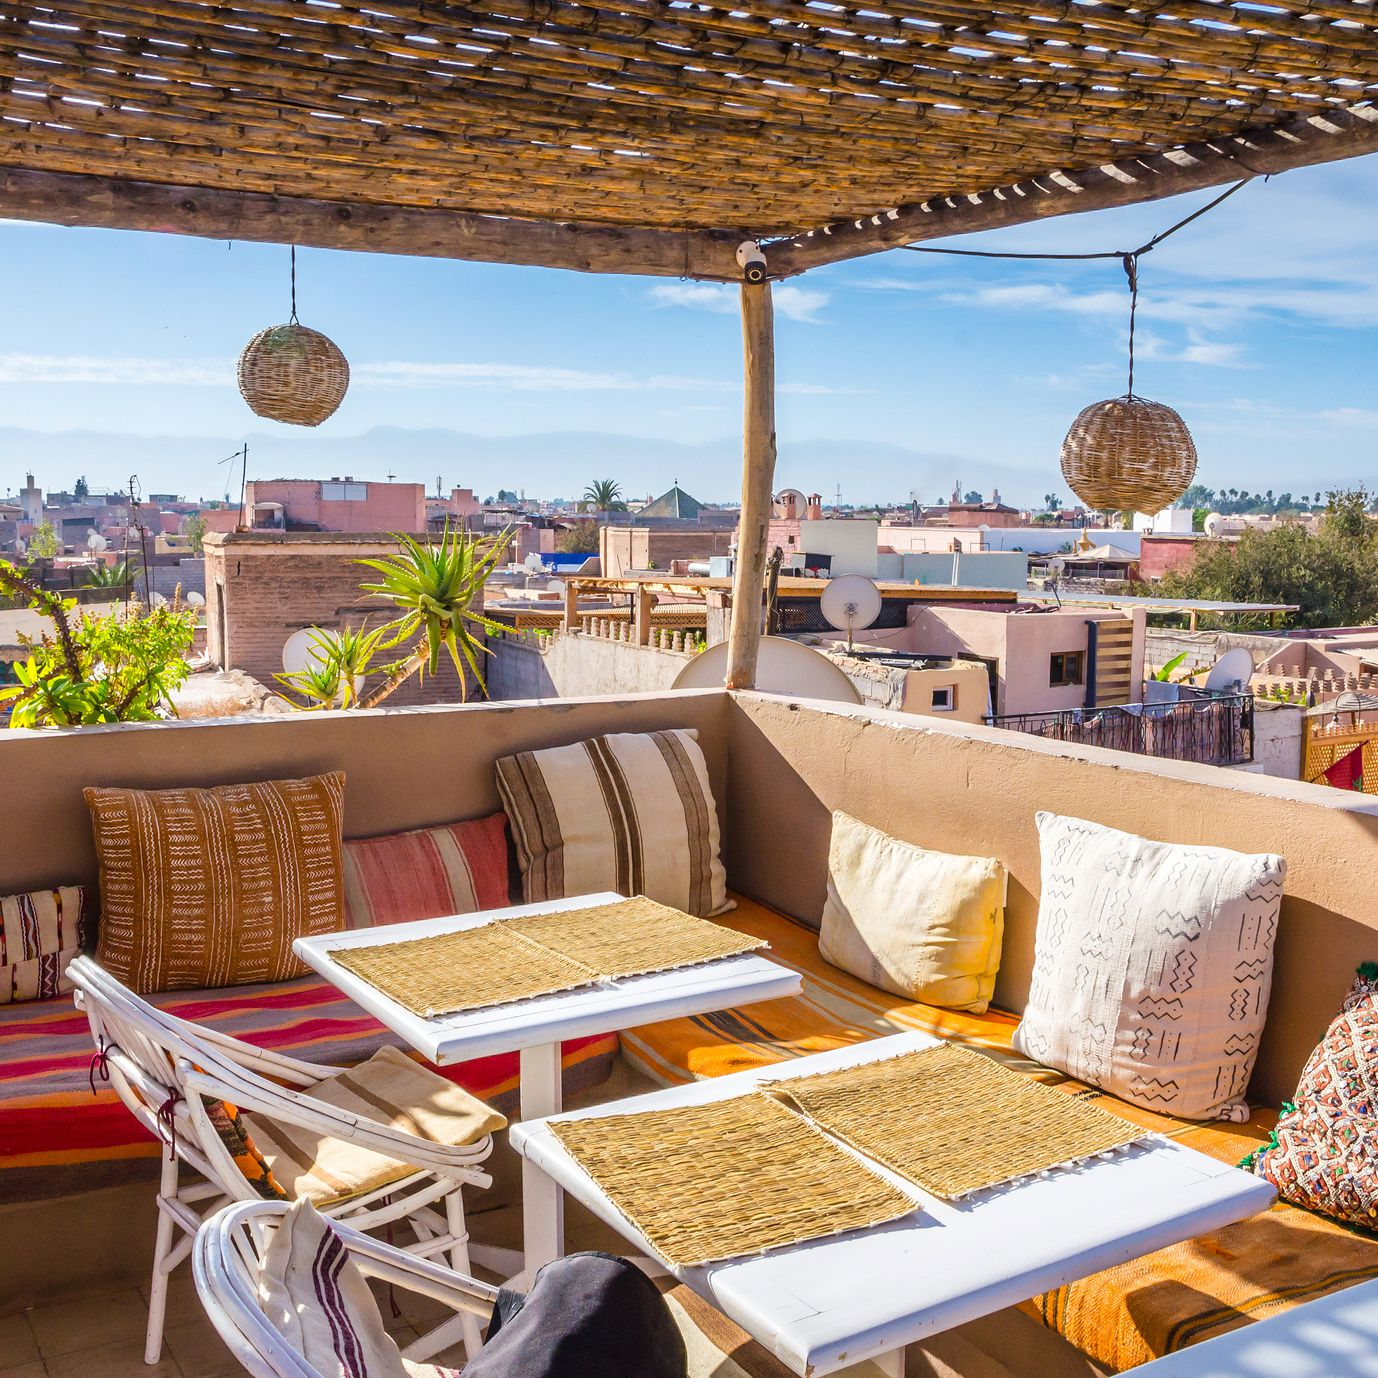 The Complete Guide to Moroccan Riads